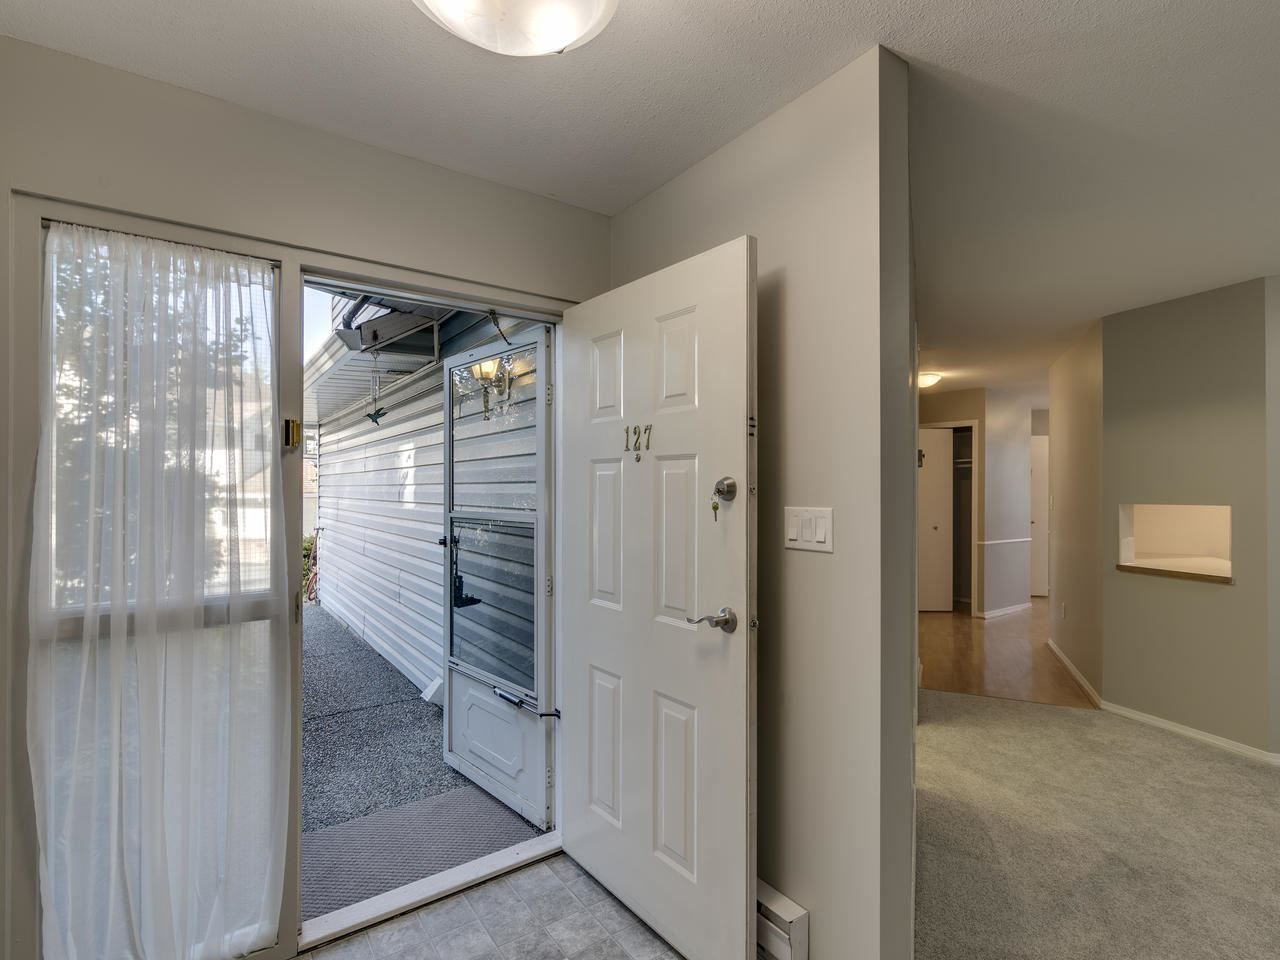 """Photo 13: Photos: 127 22555 116 Avenue in Maple Ridge: East Central Townhouse for sale in """"HILLSIDE"""" : MLS®# R2493046"""